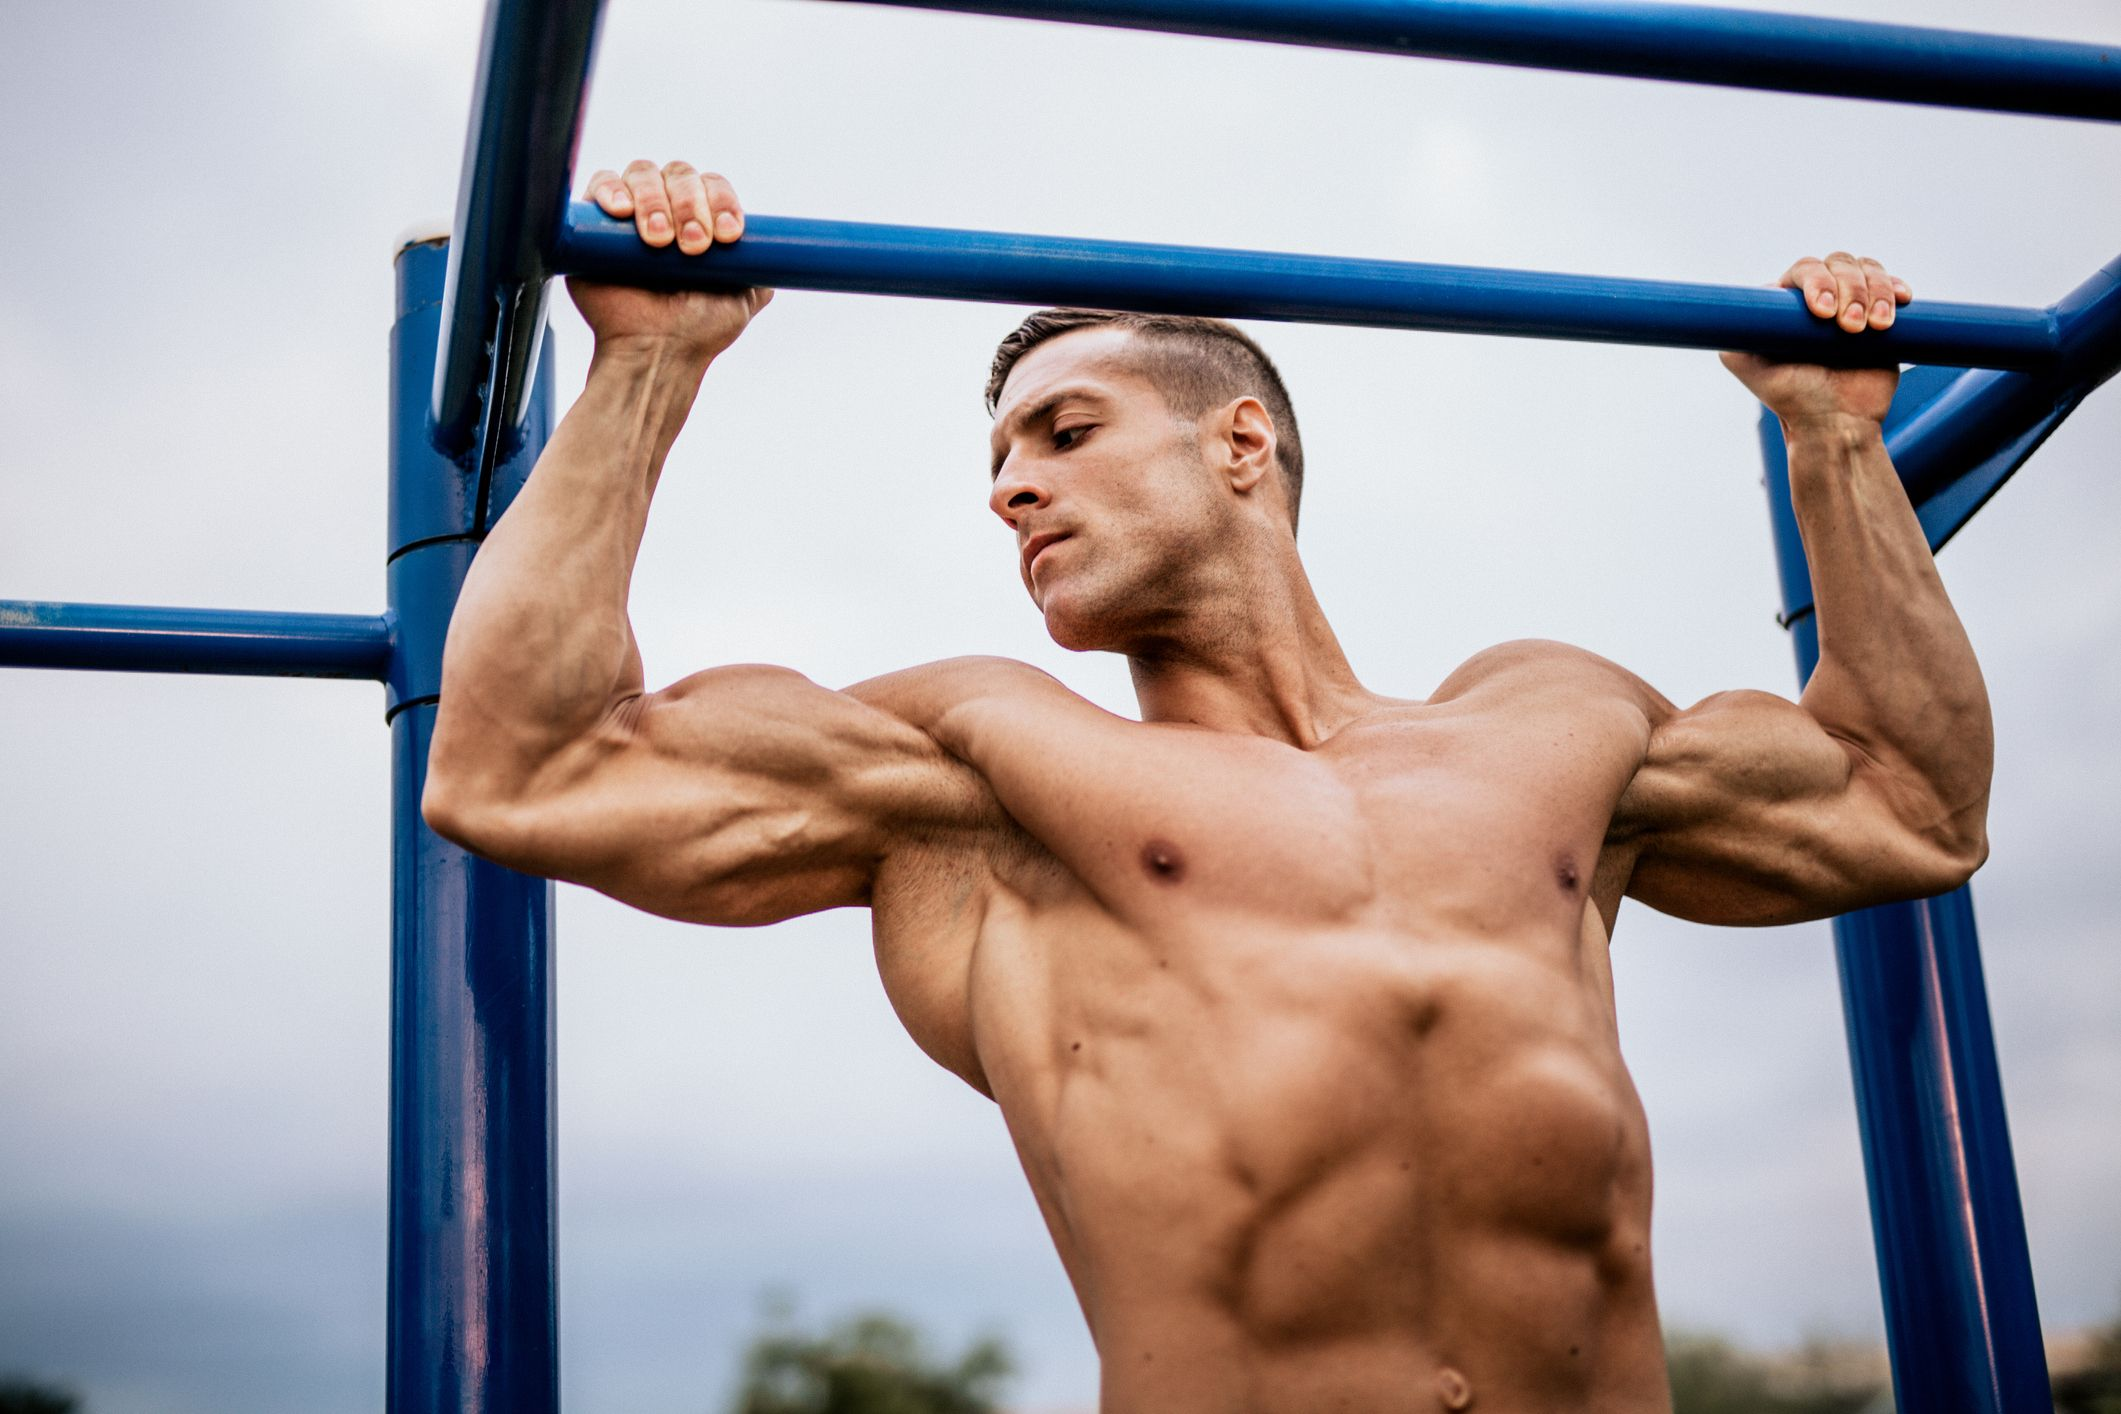 This Playground Bodyweight Workout Builds Strength and Size